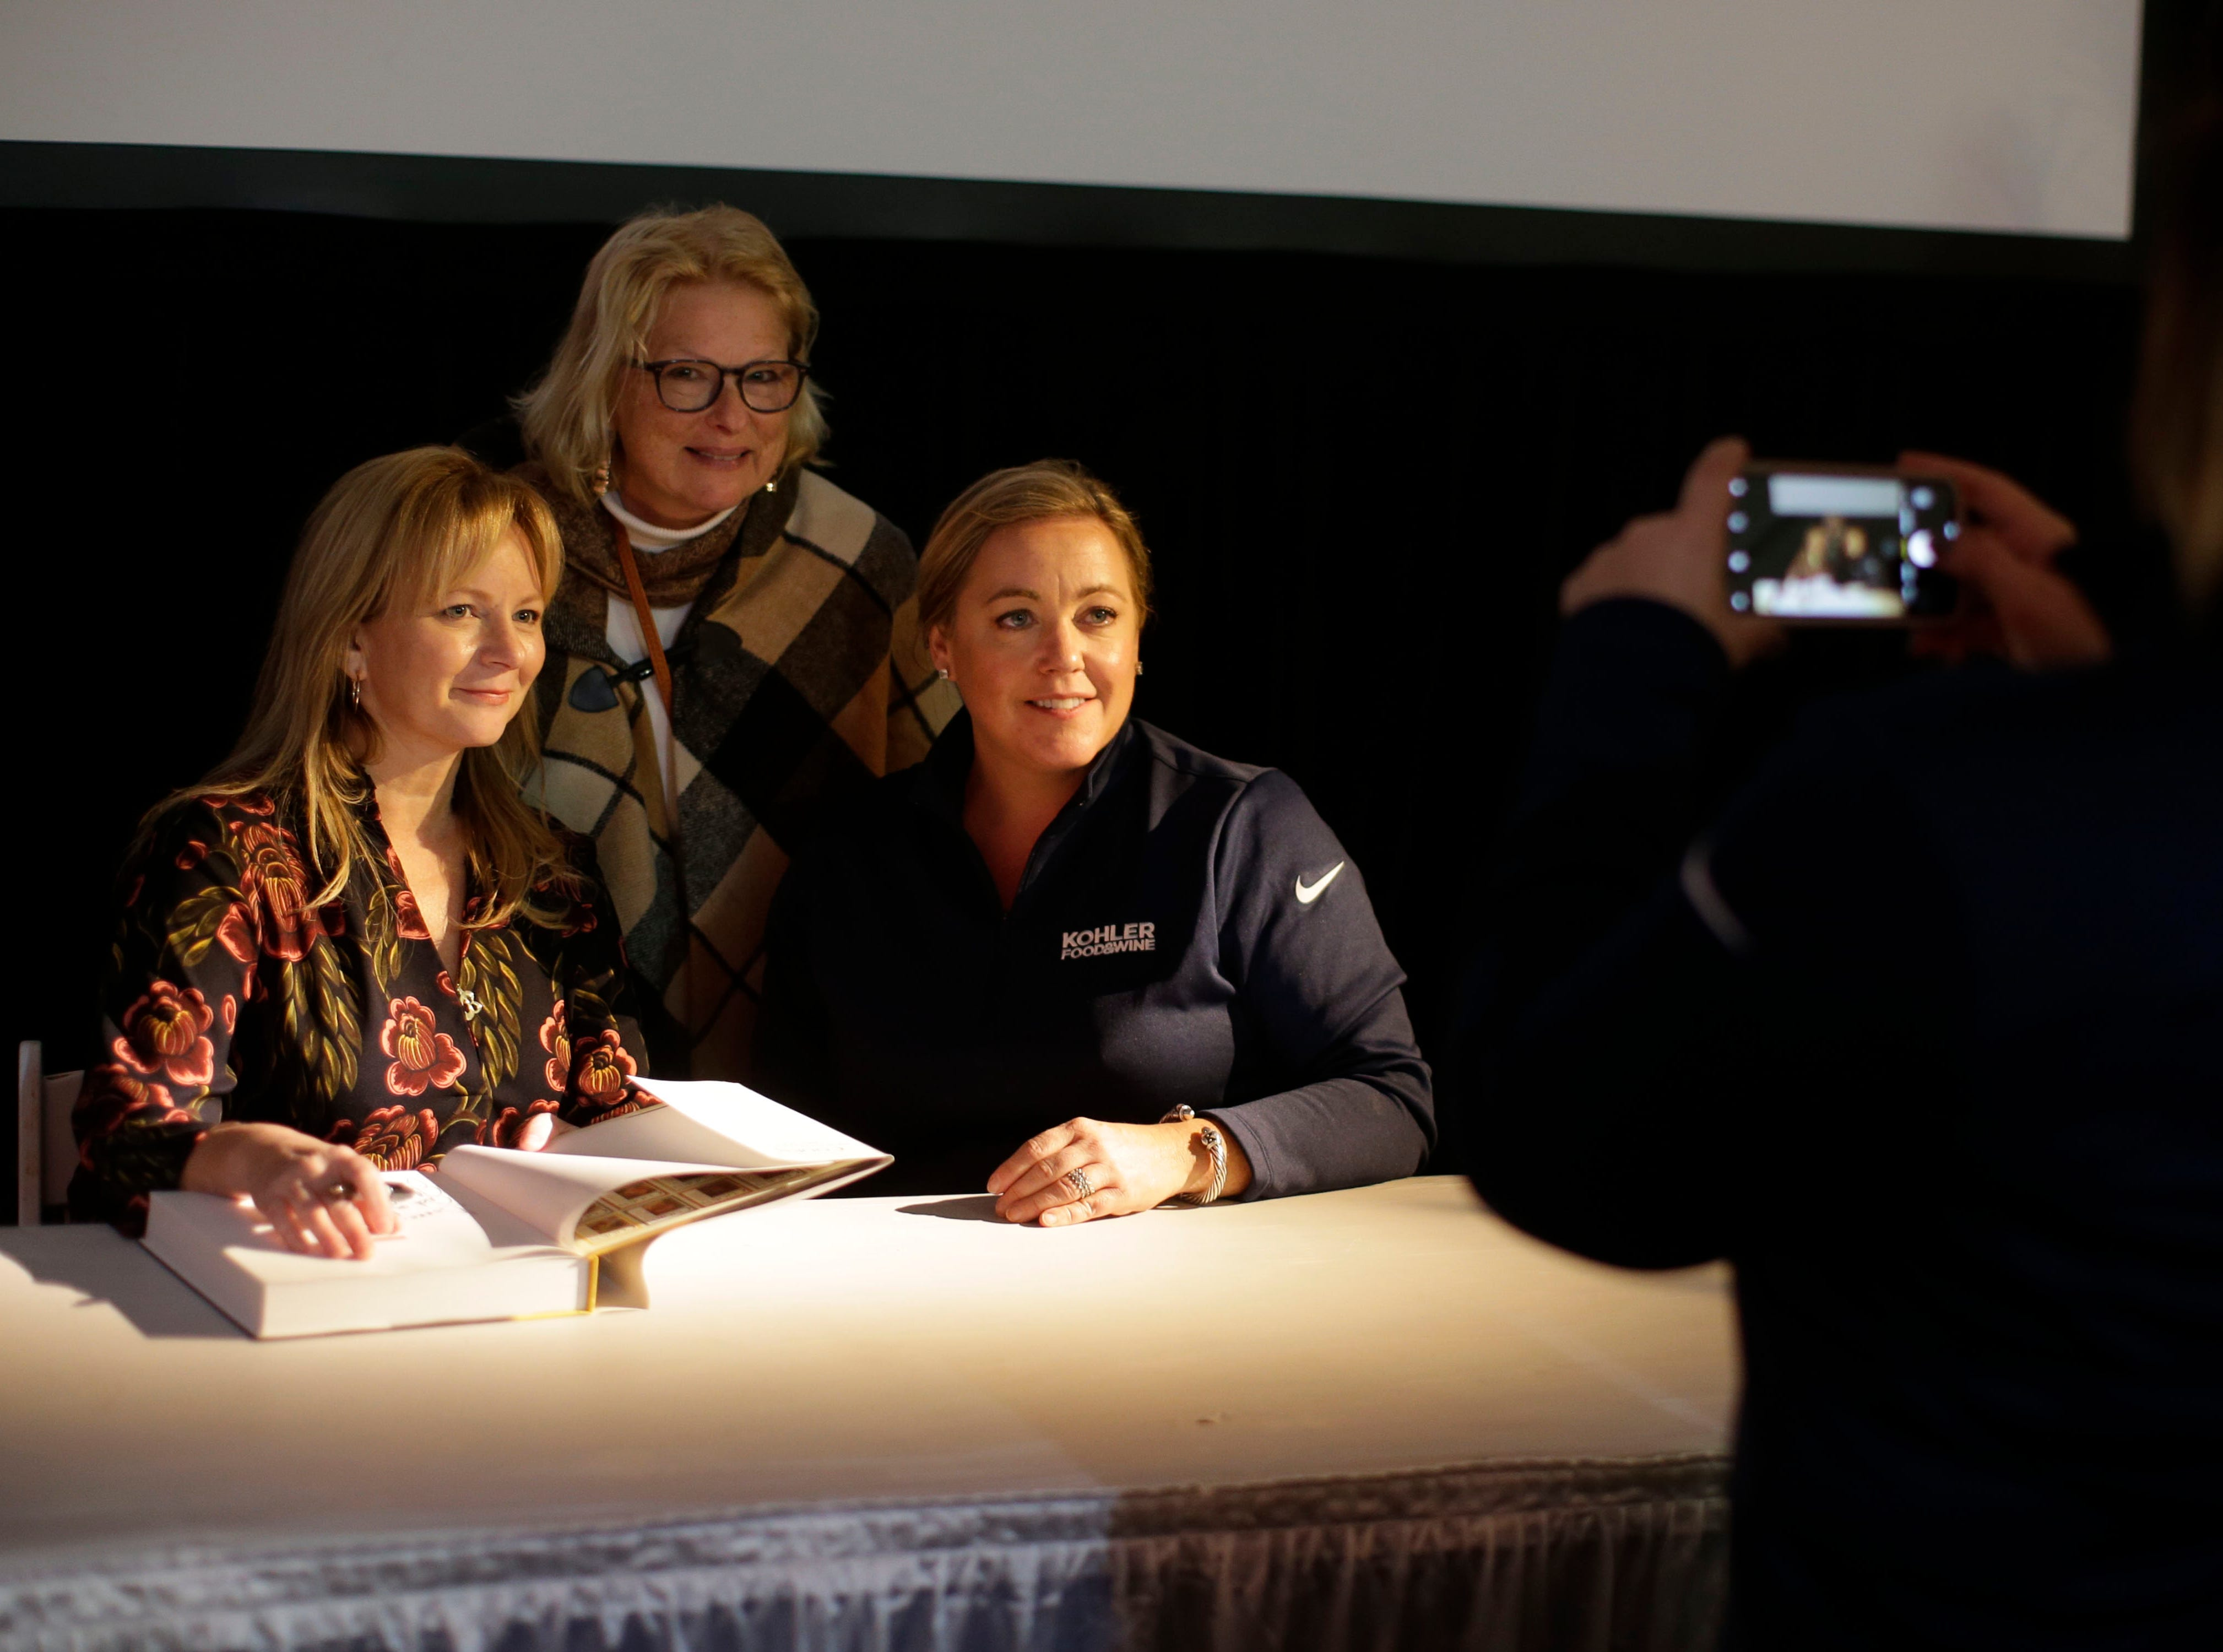 America's Test Kitchen's Bridget Lancaster, left seated, and Julia Collin Davison, right seated, poses with a guest at Kohler Food and Wine, Saturday, October 20, 2018, in Kohler, Wis.